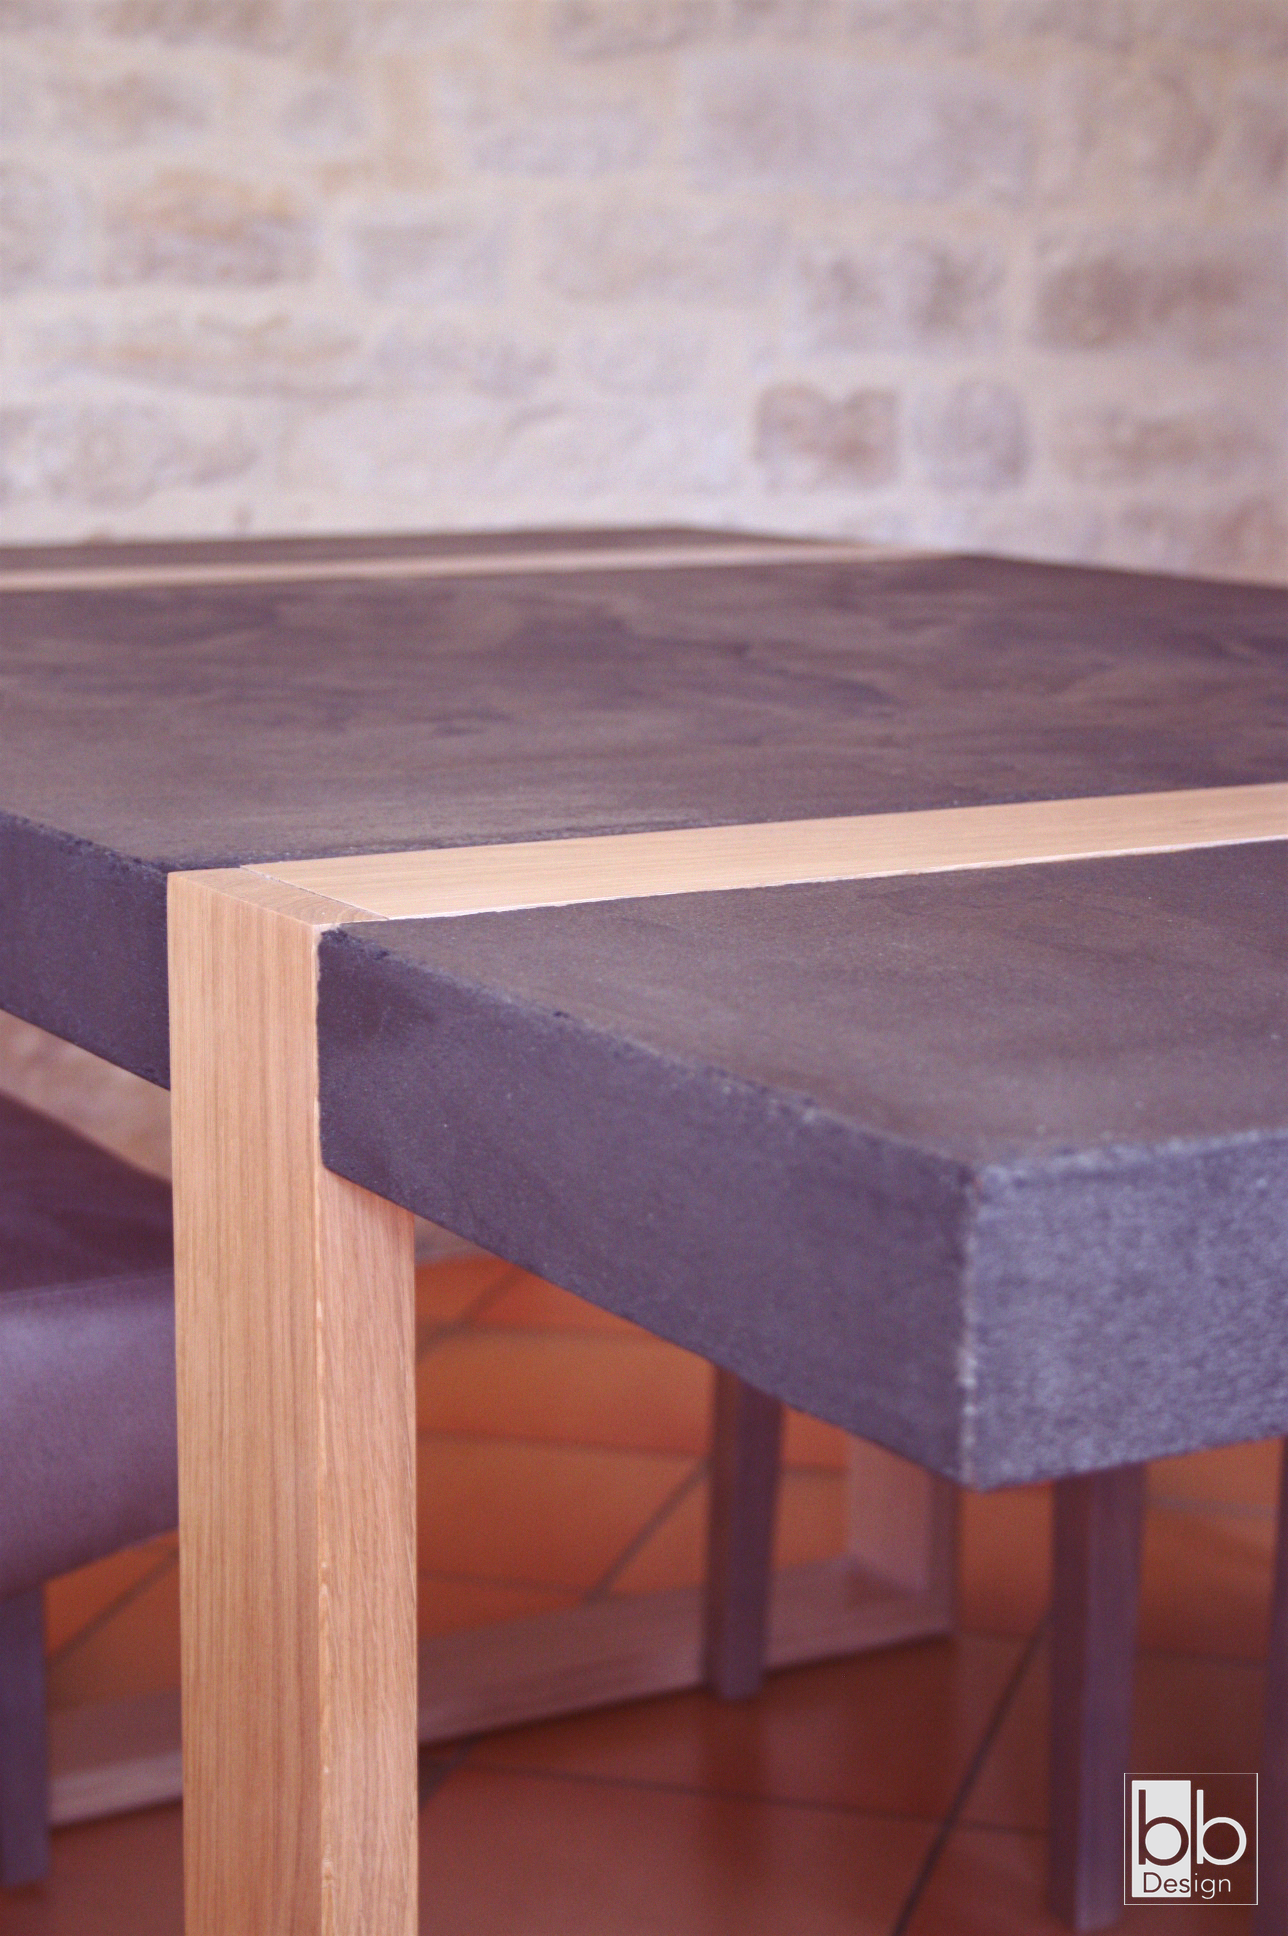 Les 25 meilleures id es de la cat gorie table beton cire for Salon de jardin en beton cire